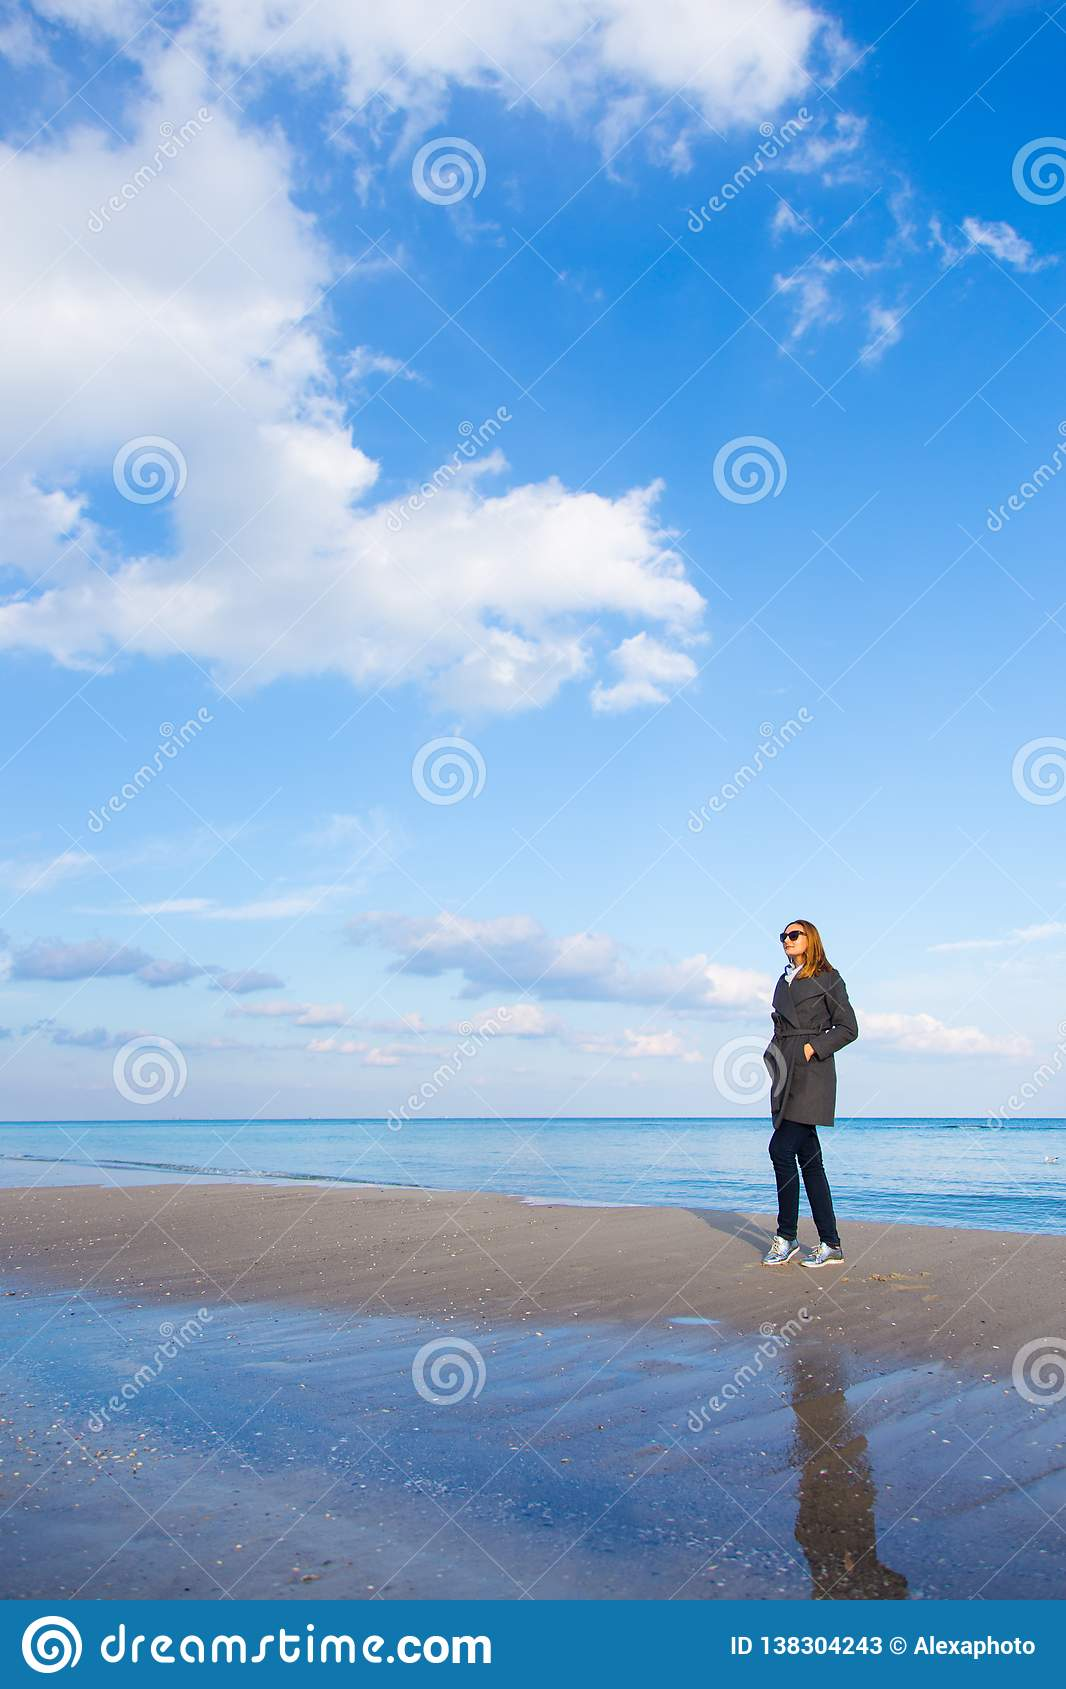 Stylish red-haired girl in dark coat and sunglasses standing on seaside with beautiful sky and water on background